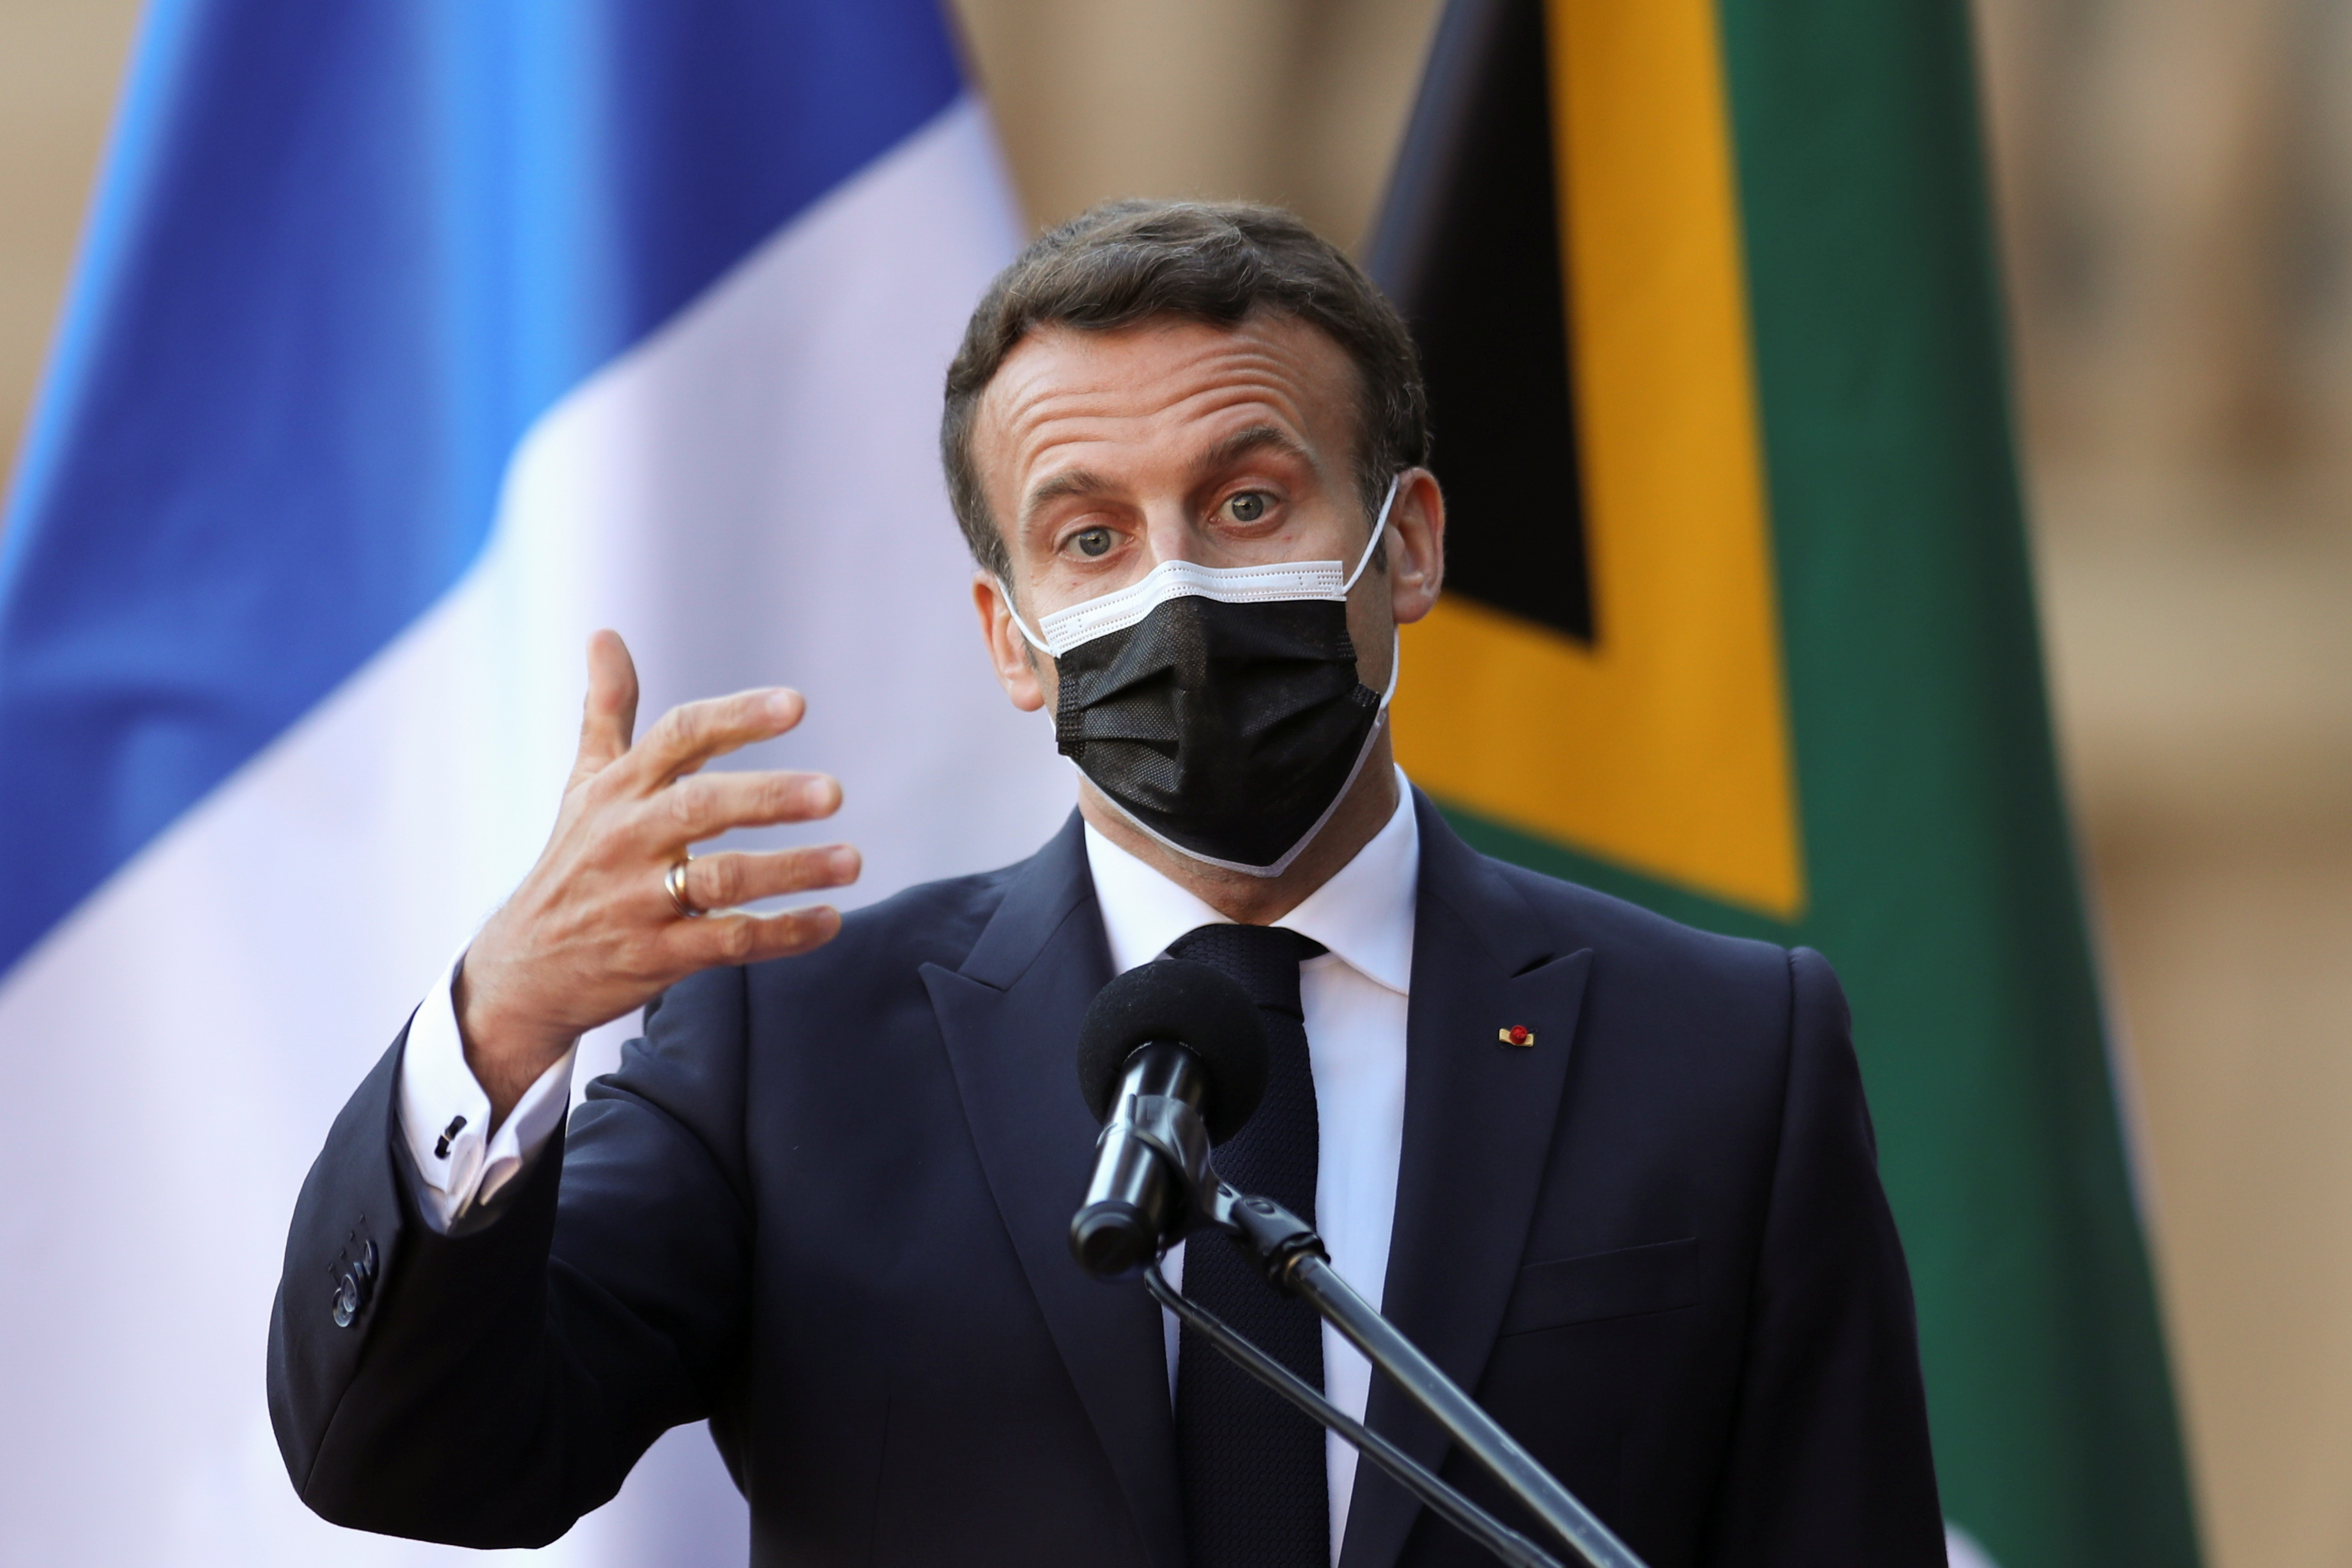 France's President Emmanuel Macron briefs media during a state visit, at the Union Buildings in Pretoria, South Africa May 28, 2021. REUTERS/Siphiwe Sibeko